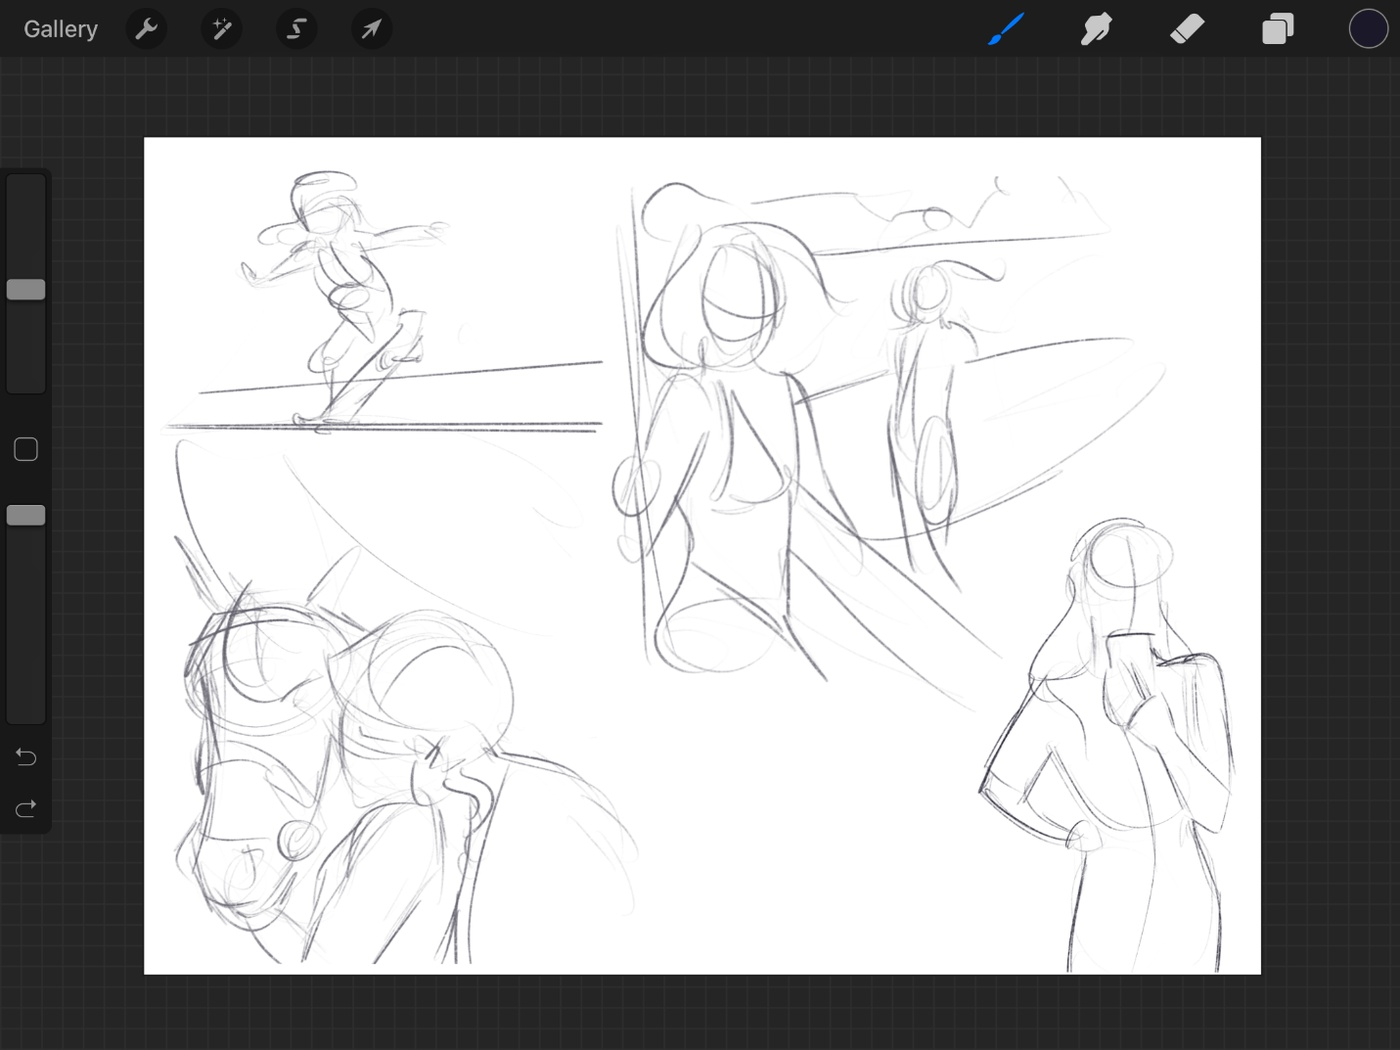 thumbnail sketches loose drawing procreate 2d illustration